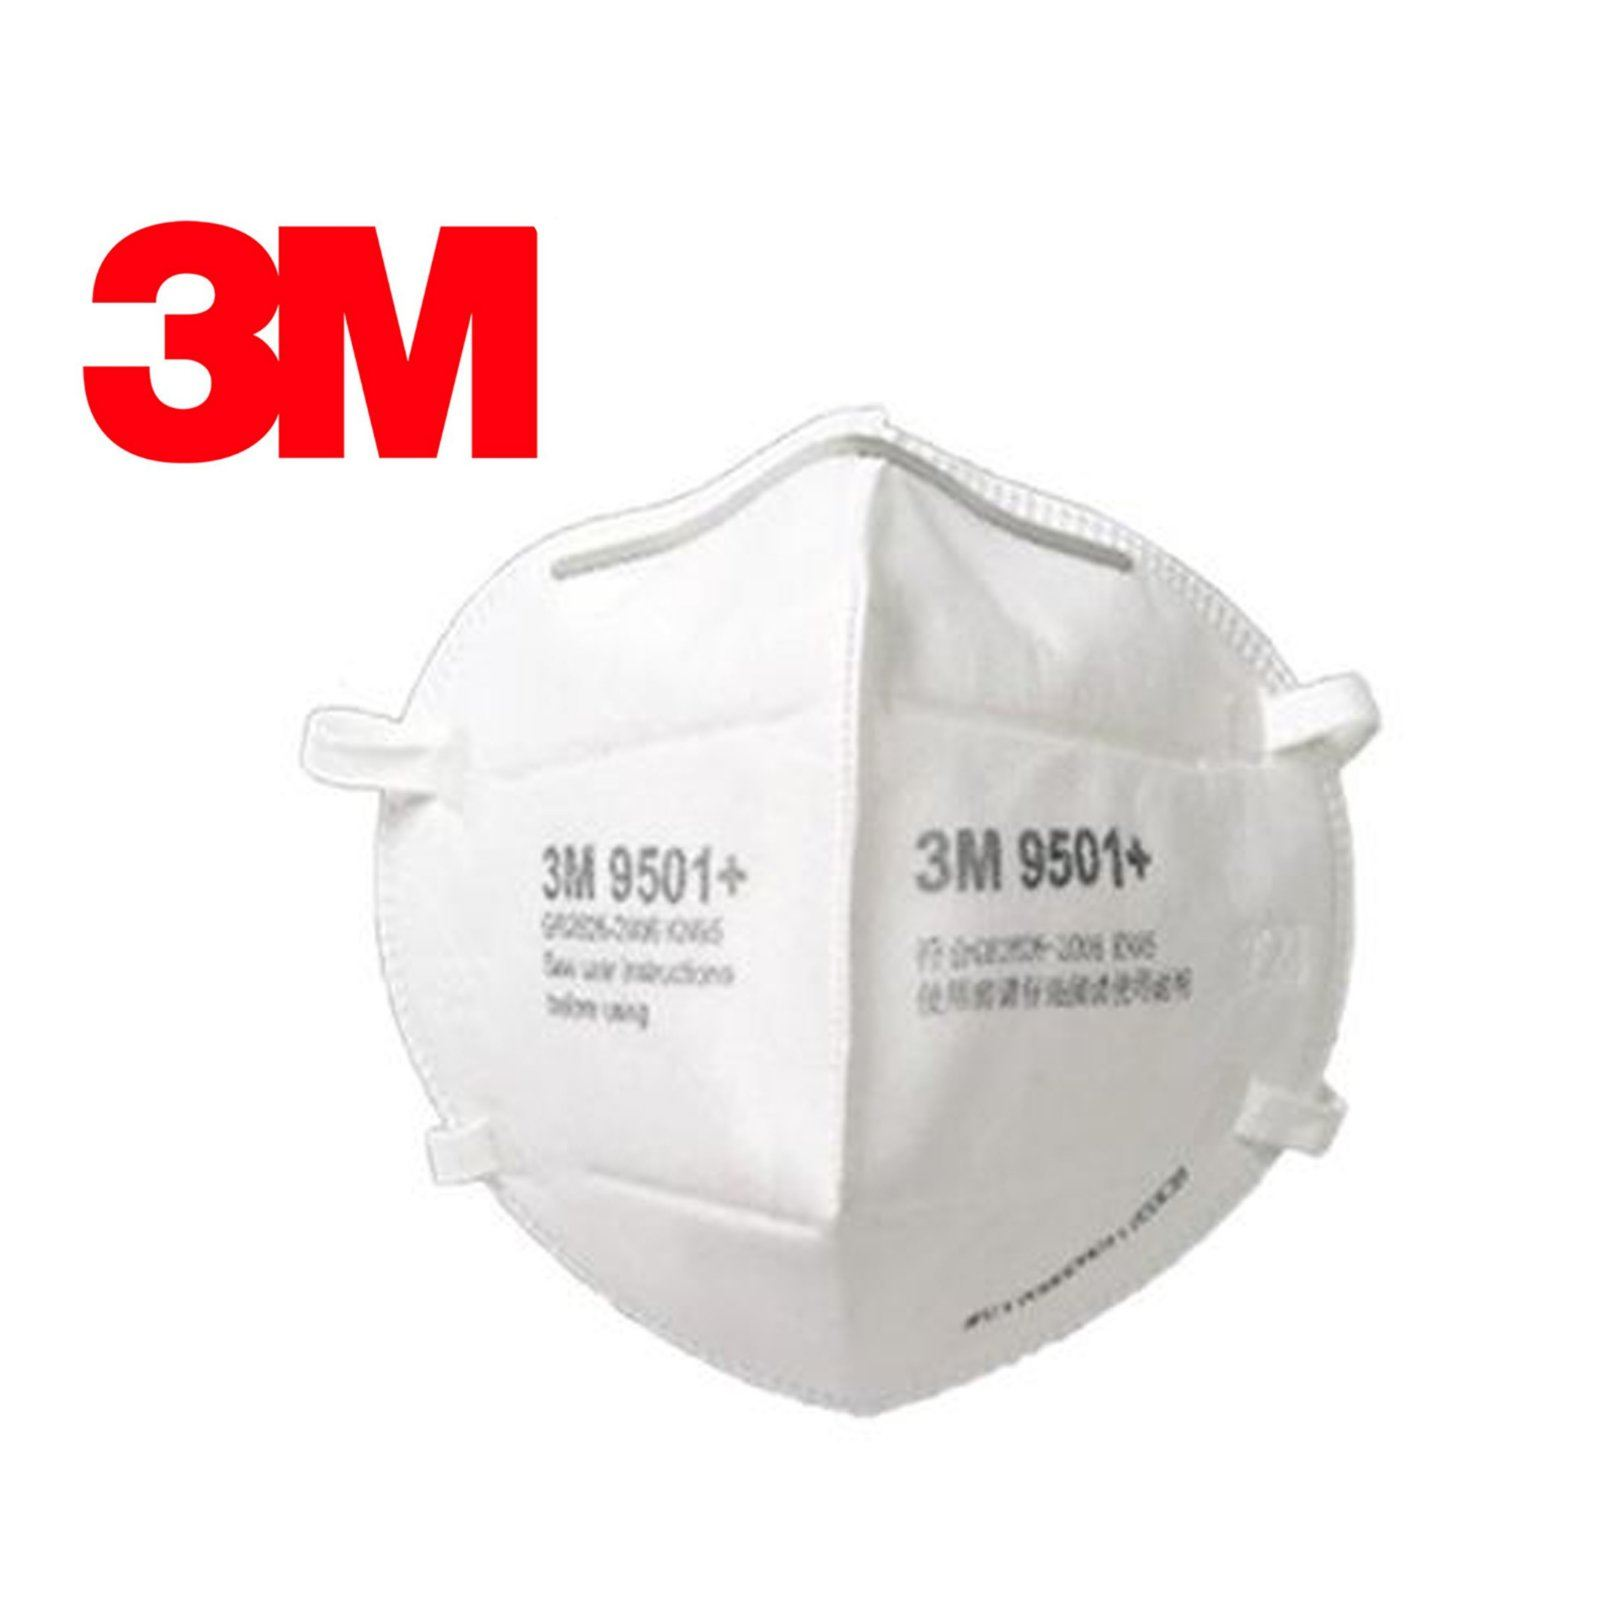 3M 9501+ Face Mask